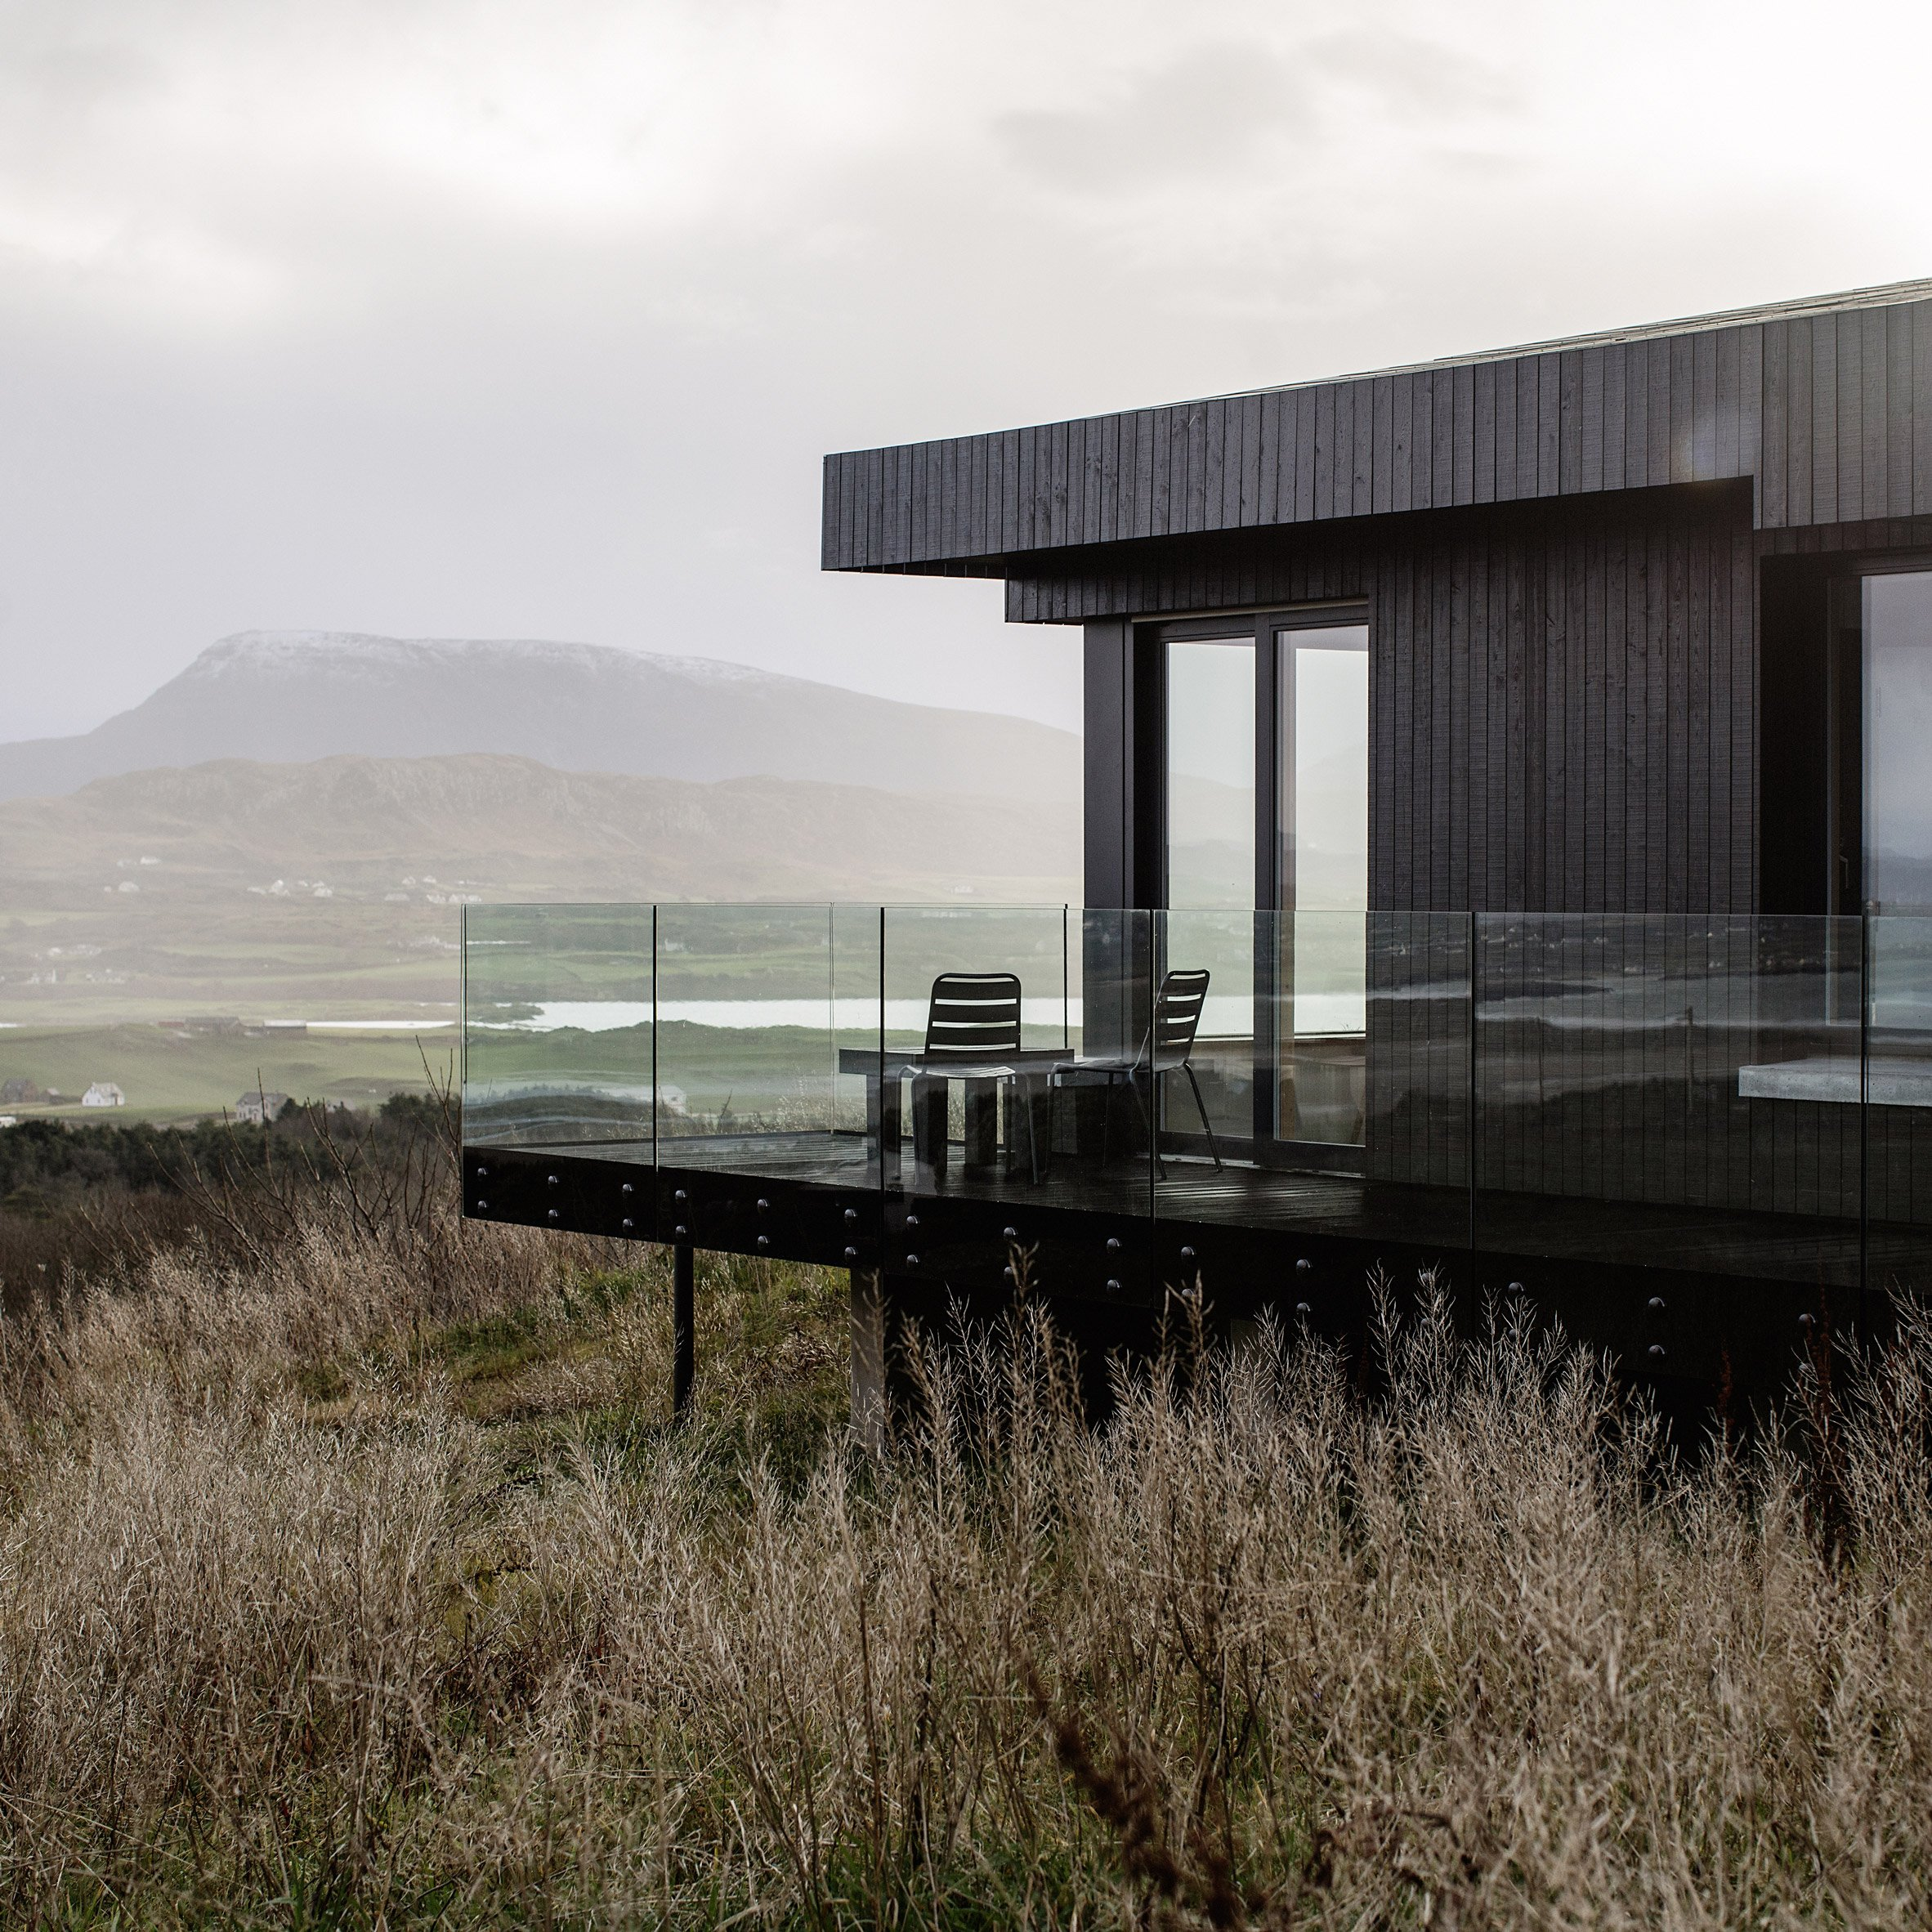 Urlaub Architektur's Holiday Architecture book roundup: Breac.House by MacGabhann Architects